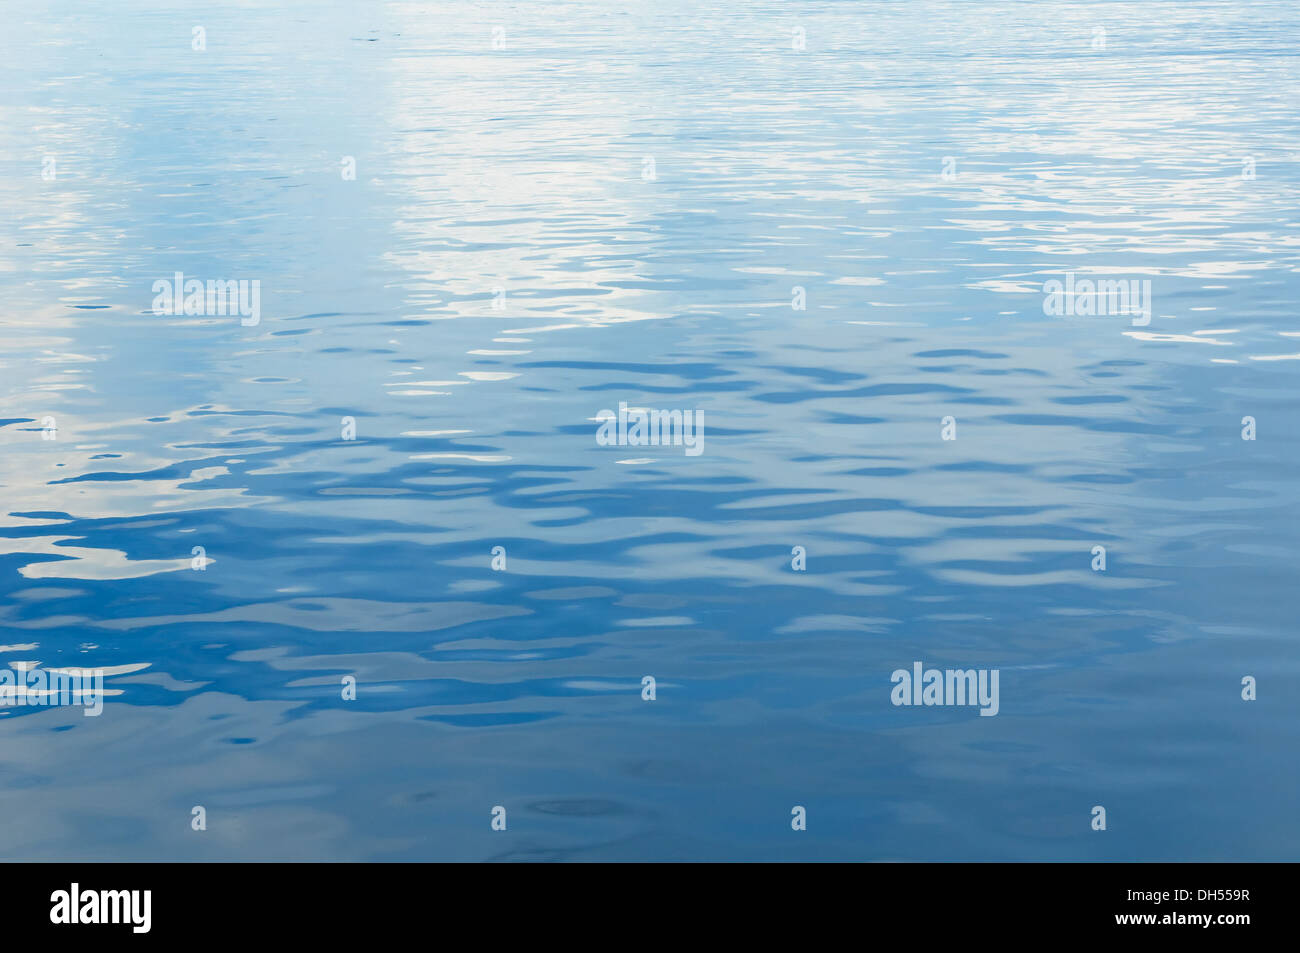 background of blue rippled water - Stock Image